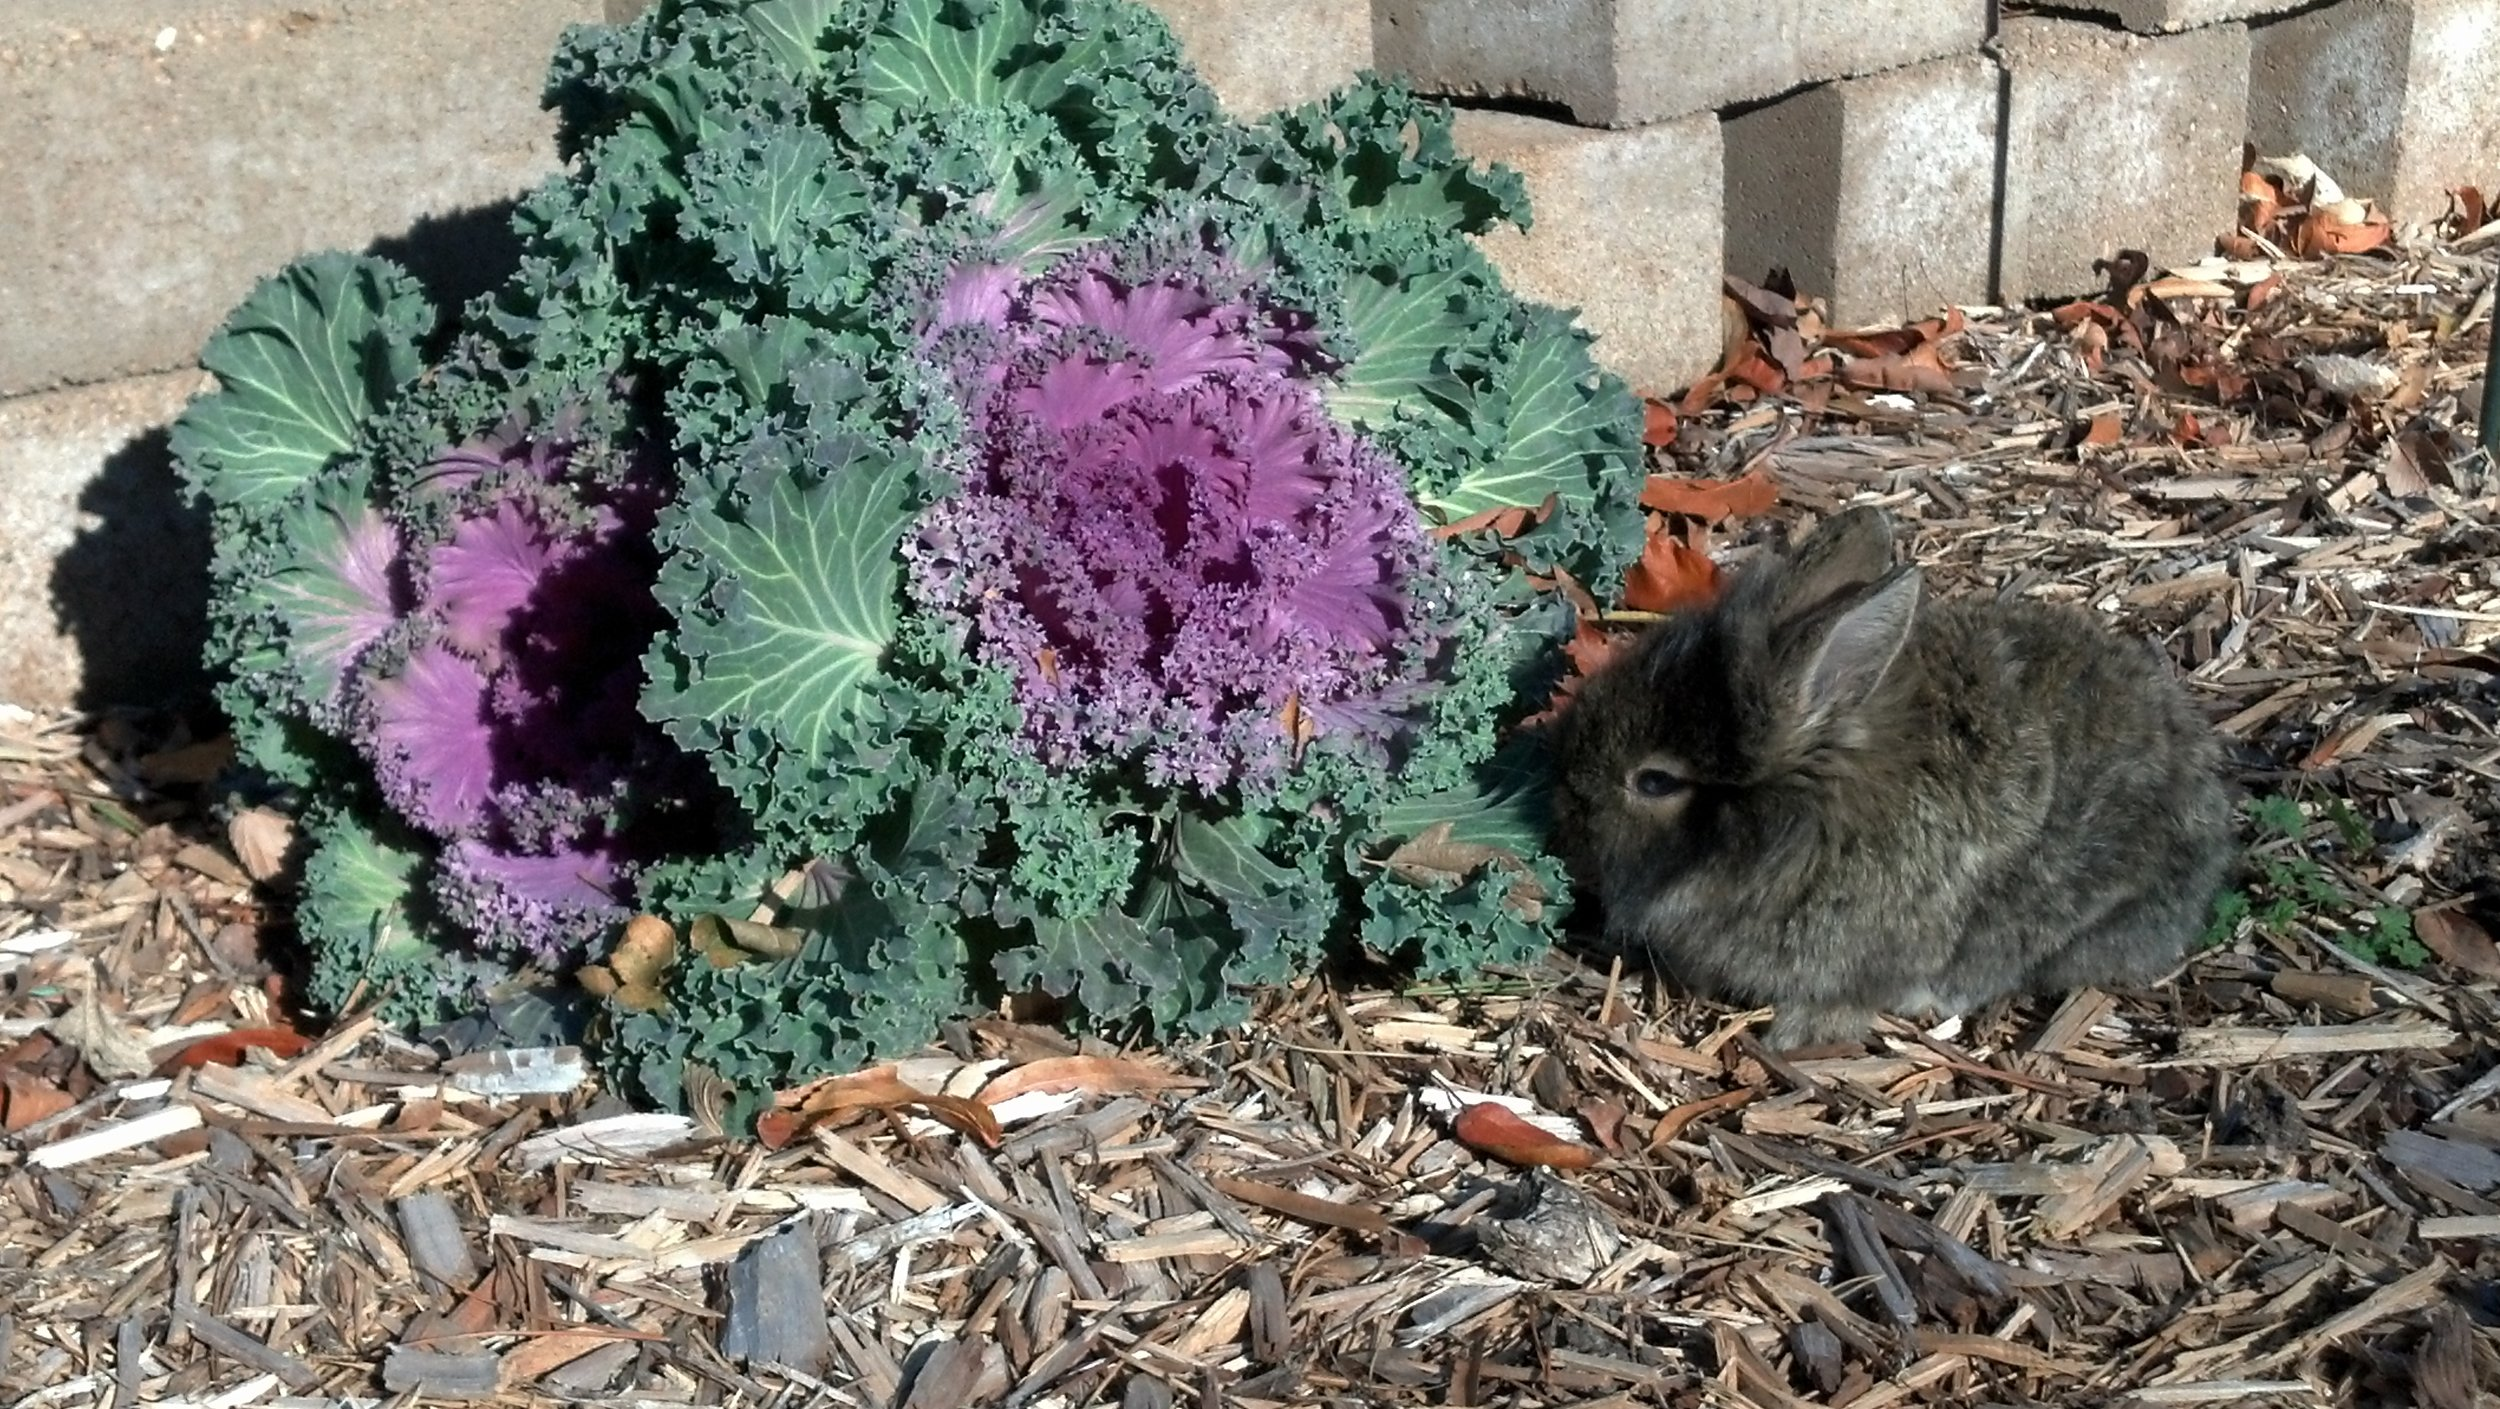 Bunny Gets Started on the Kale Plant Growing in the Garden